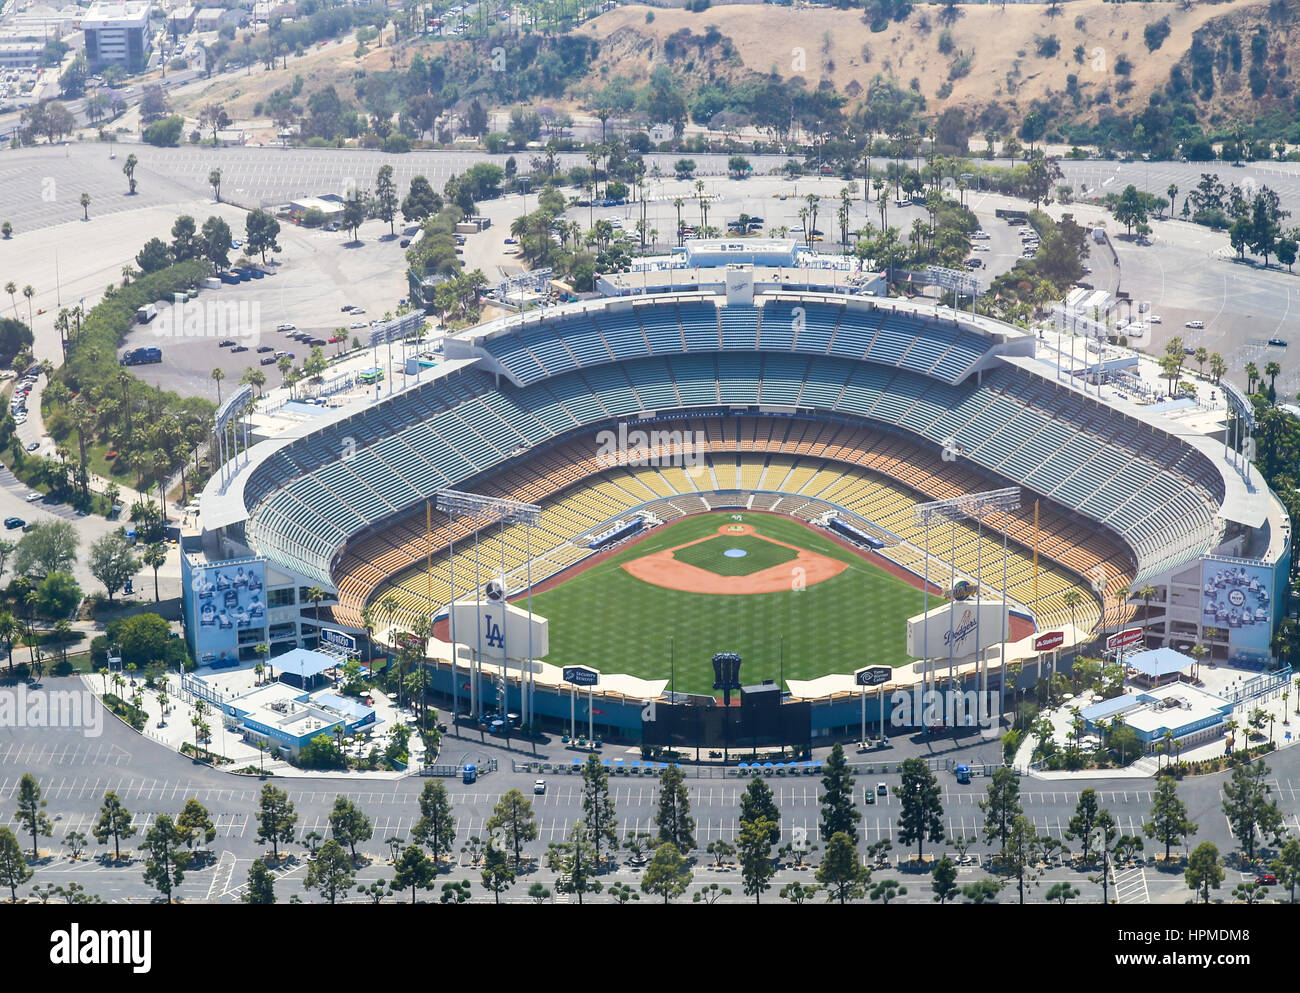 Los Angeles, USA - May 27, 2015: Aerial view of the Dodger Stadium in Elysian Park. The stadium and the stands and - Stock Image